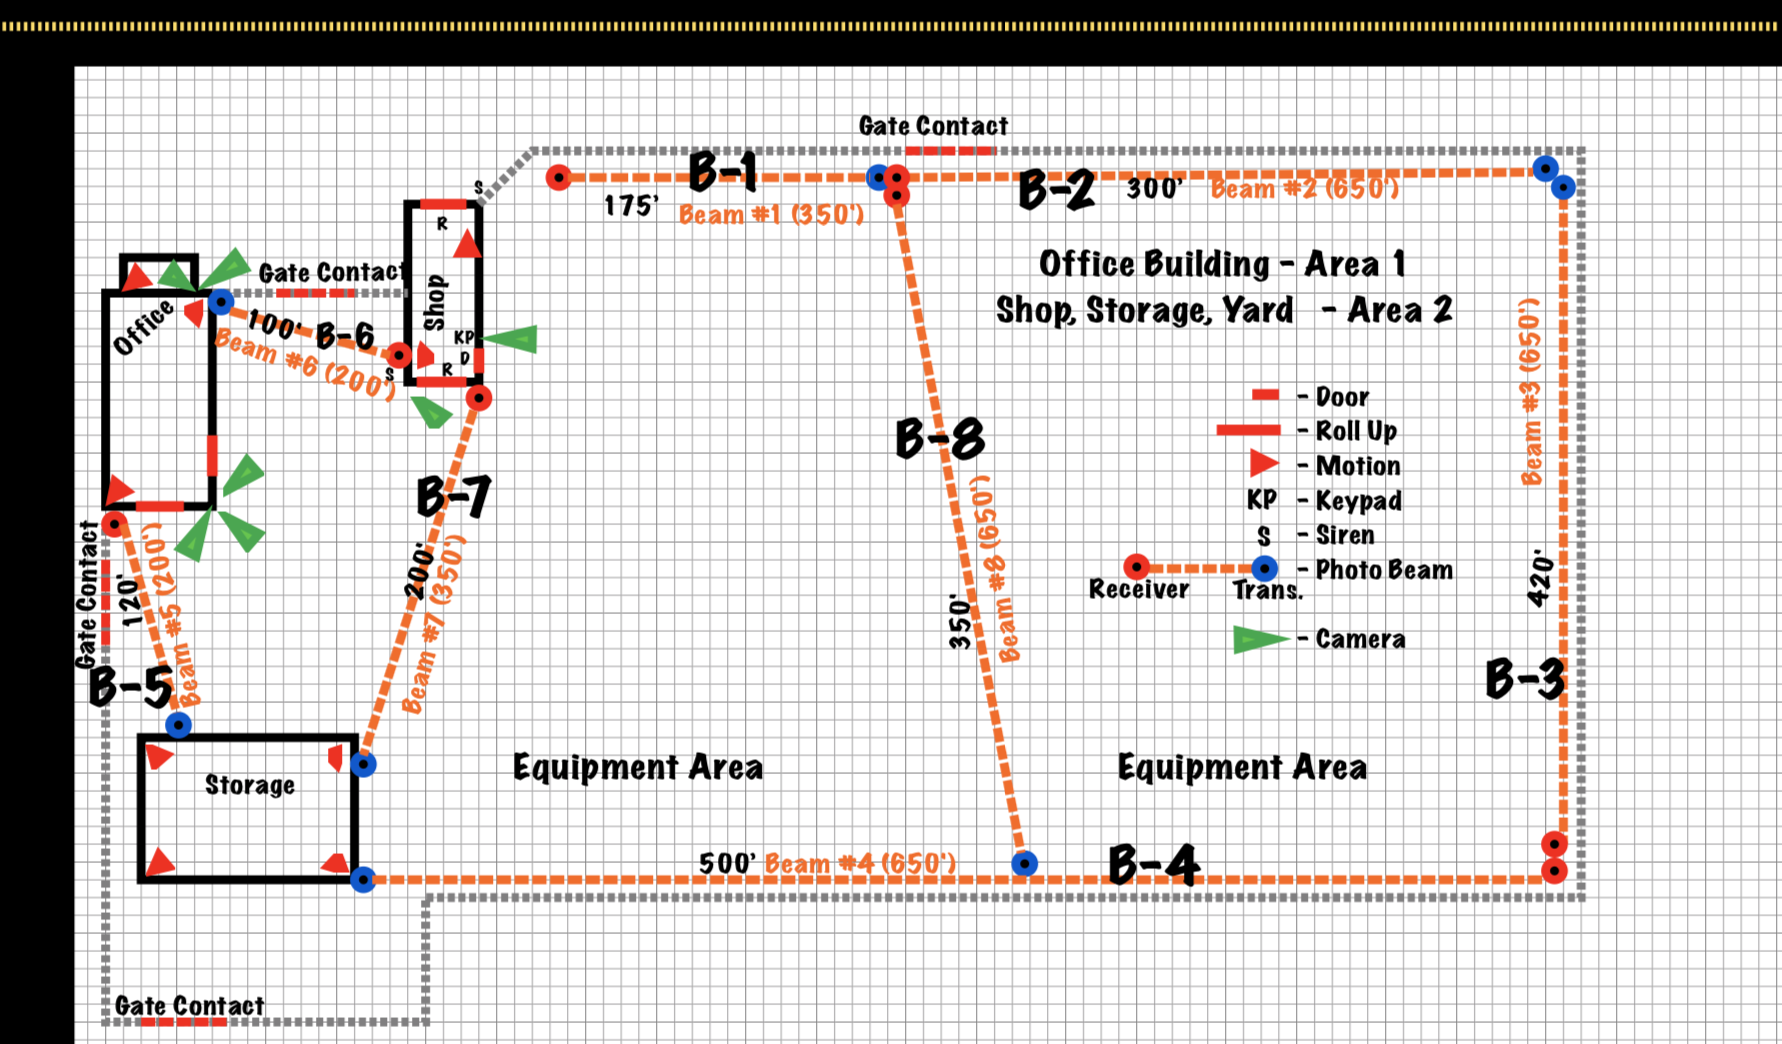 Mockup of security map/